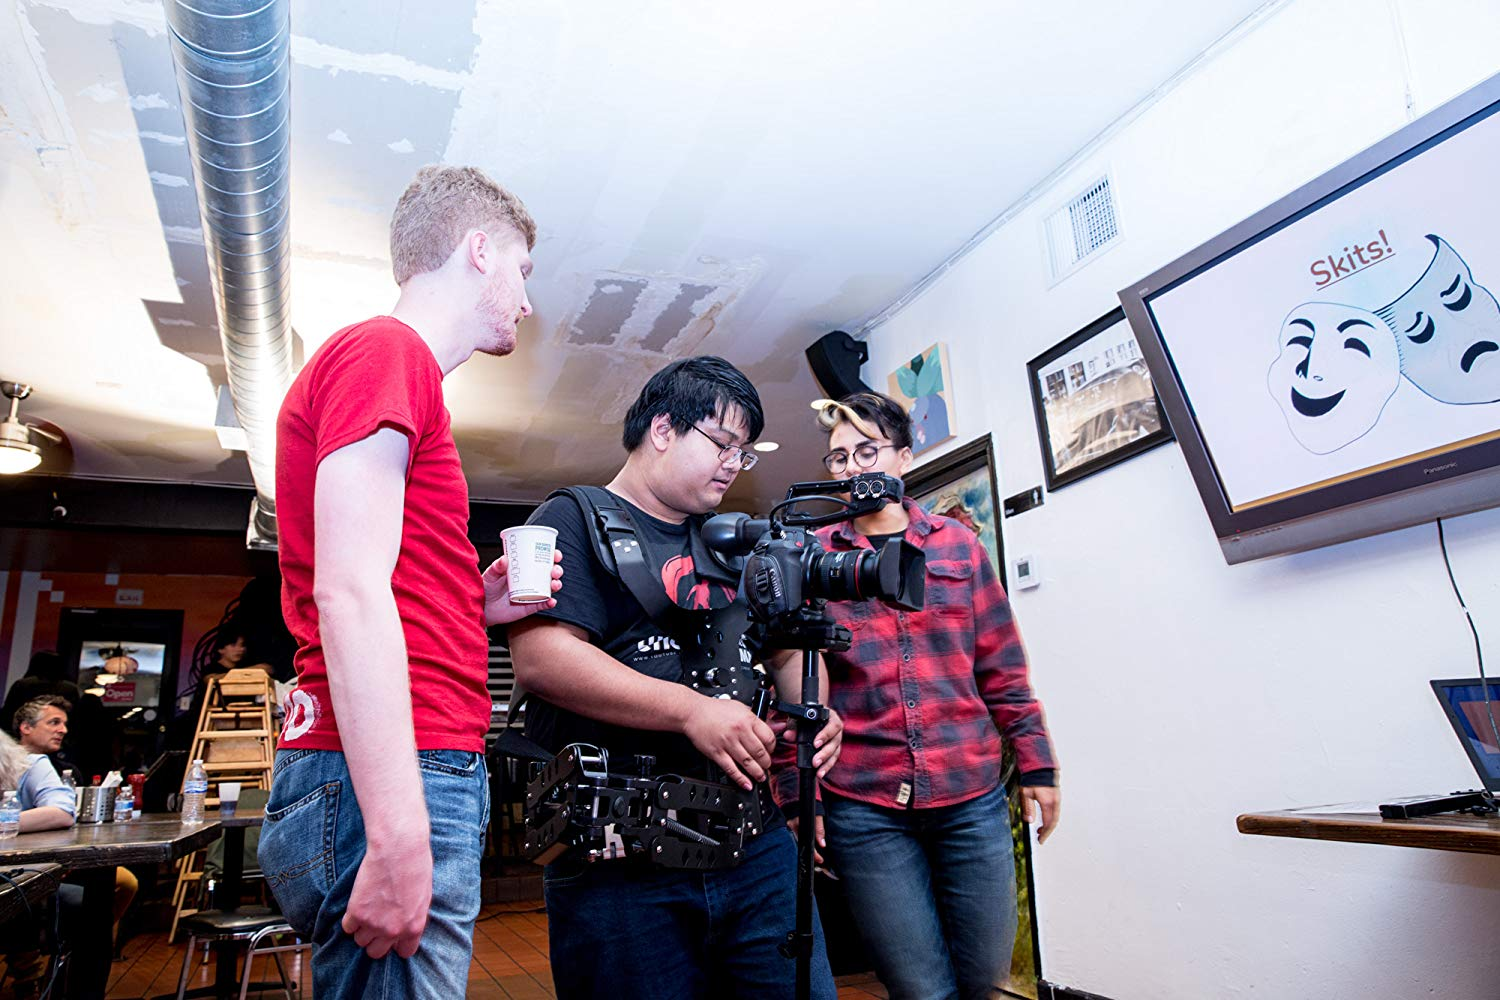 DP Eric Nguyen sets up a Steadicam shot with director Landon Coats and AC Avery Ramirez watching